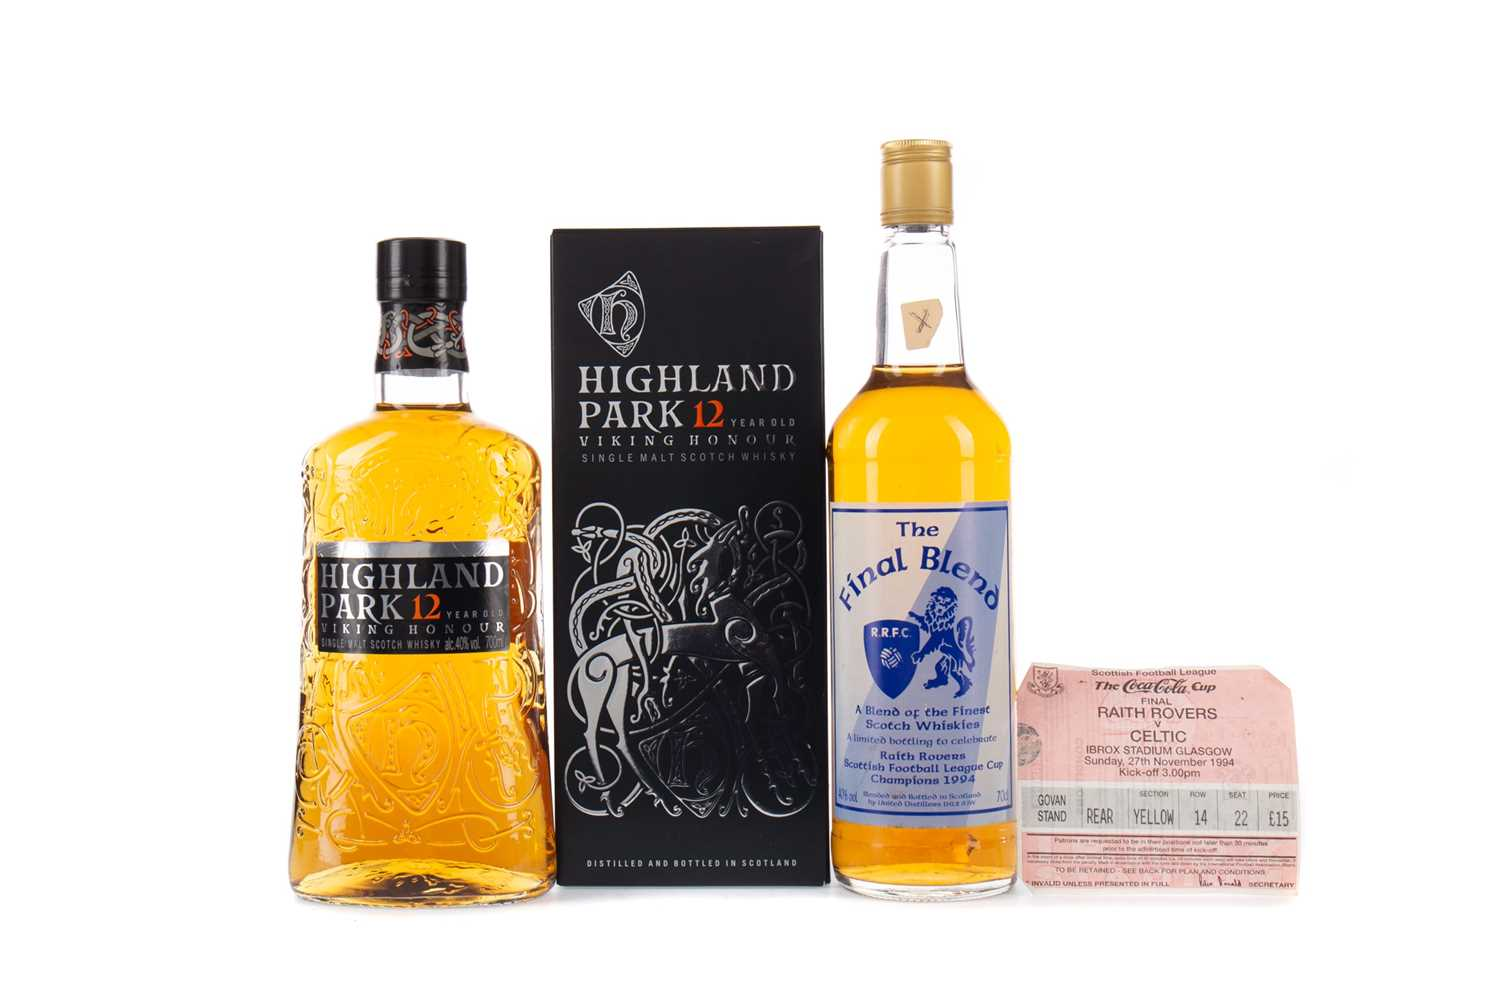 Lot 24 - HIGHLAND PARK 12 YEARS OLD, AND THE FINAL BLEND